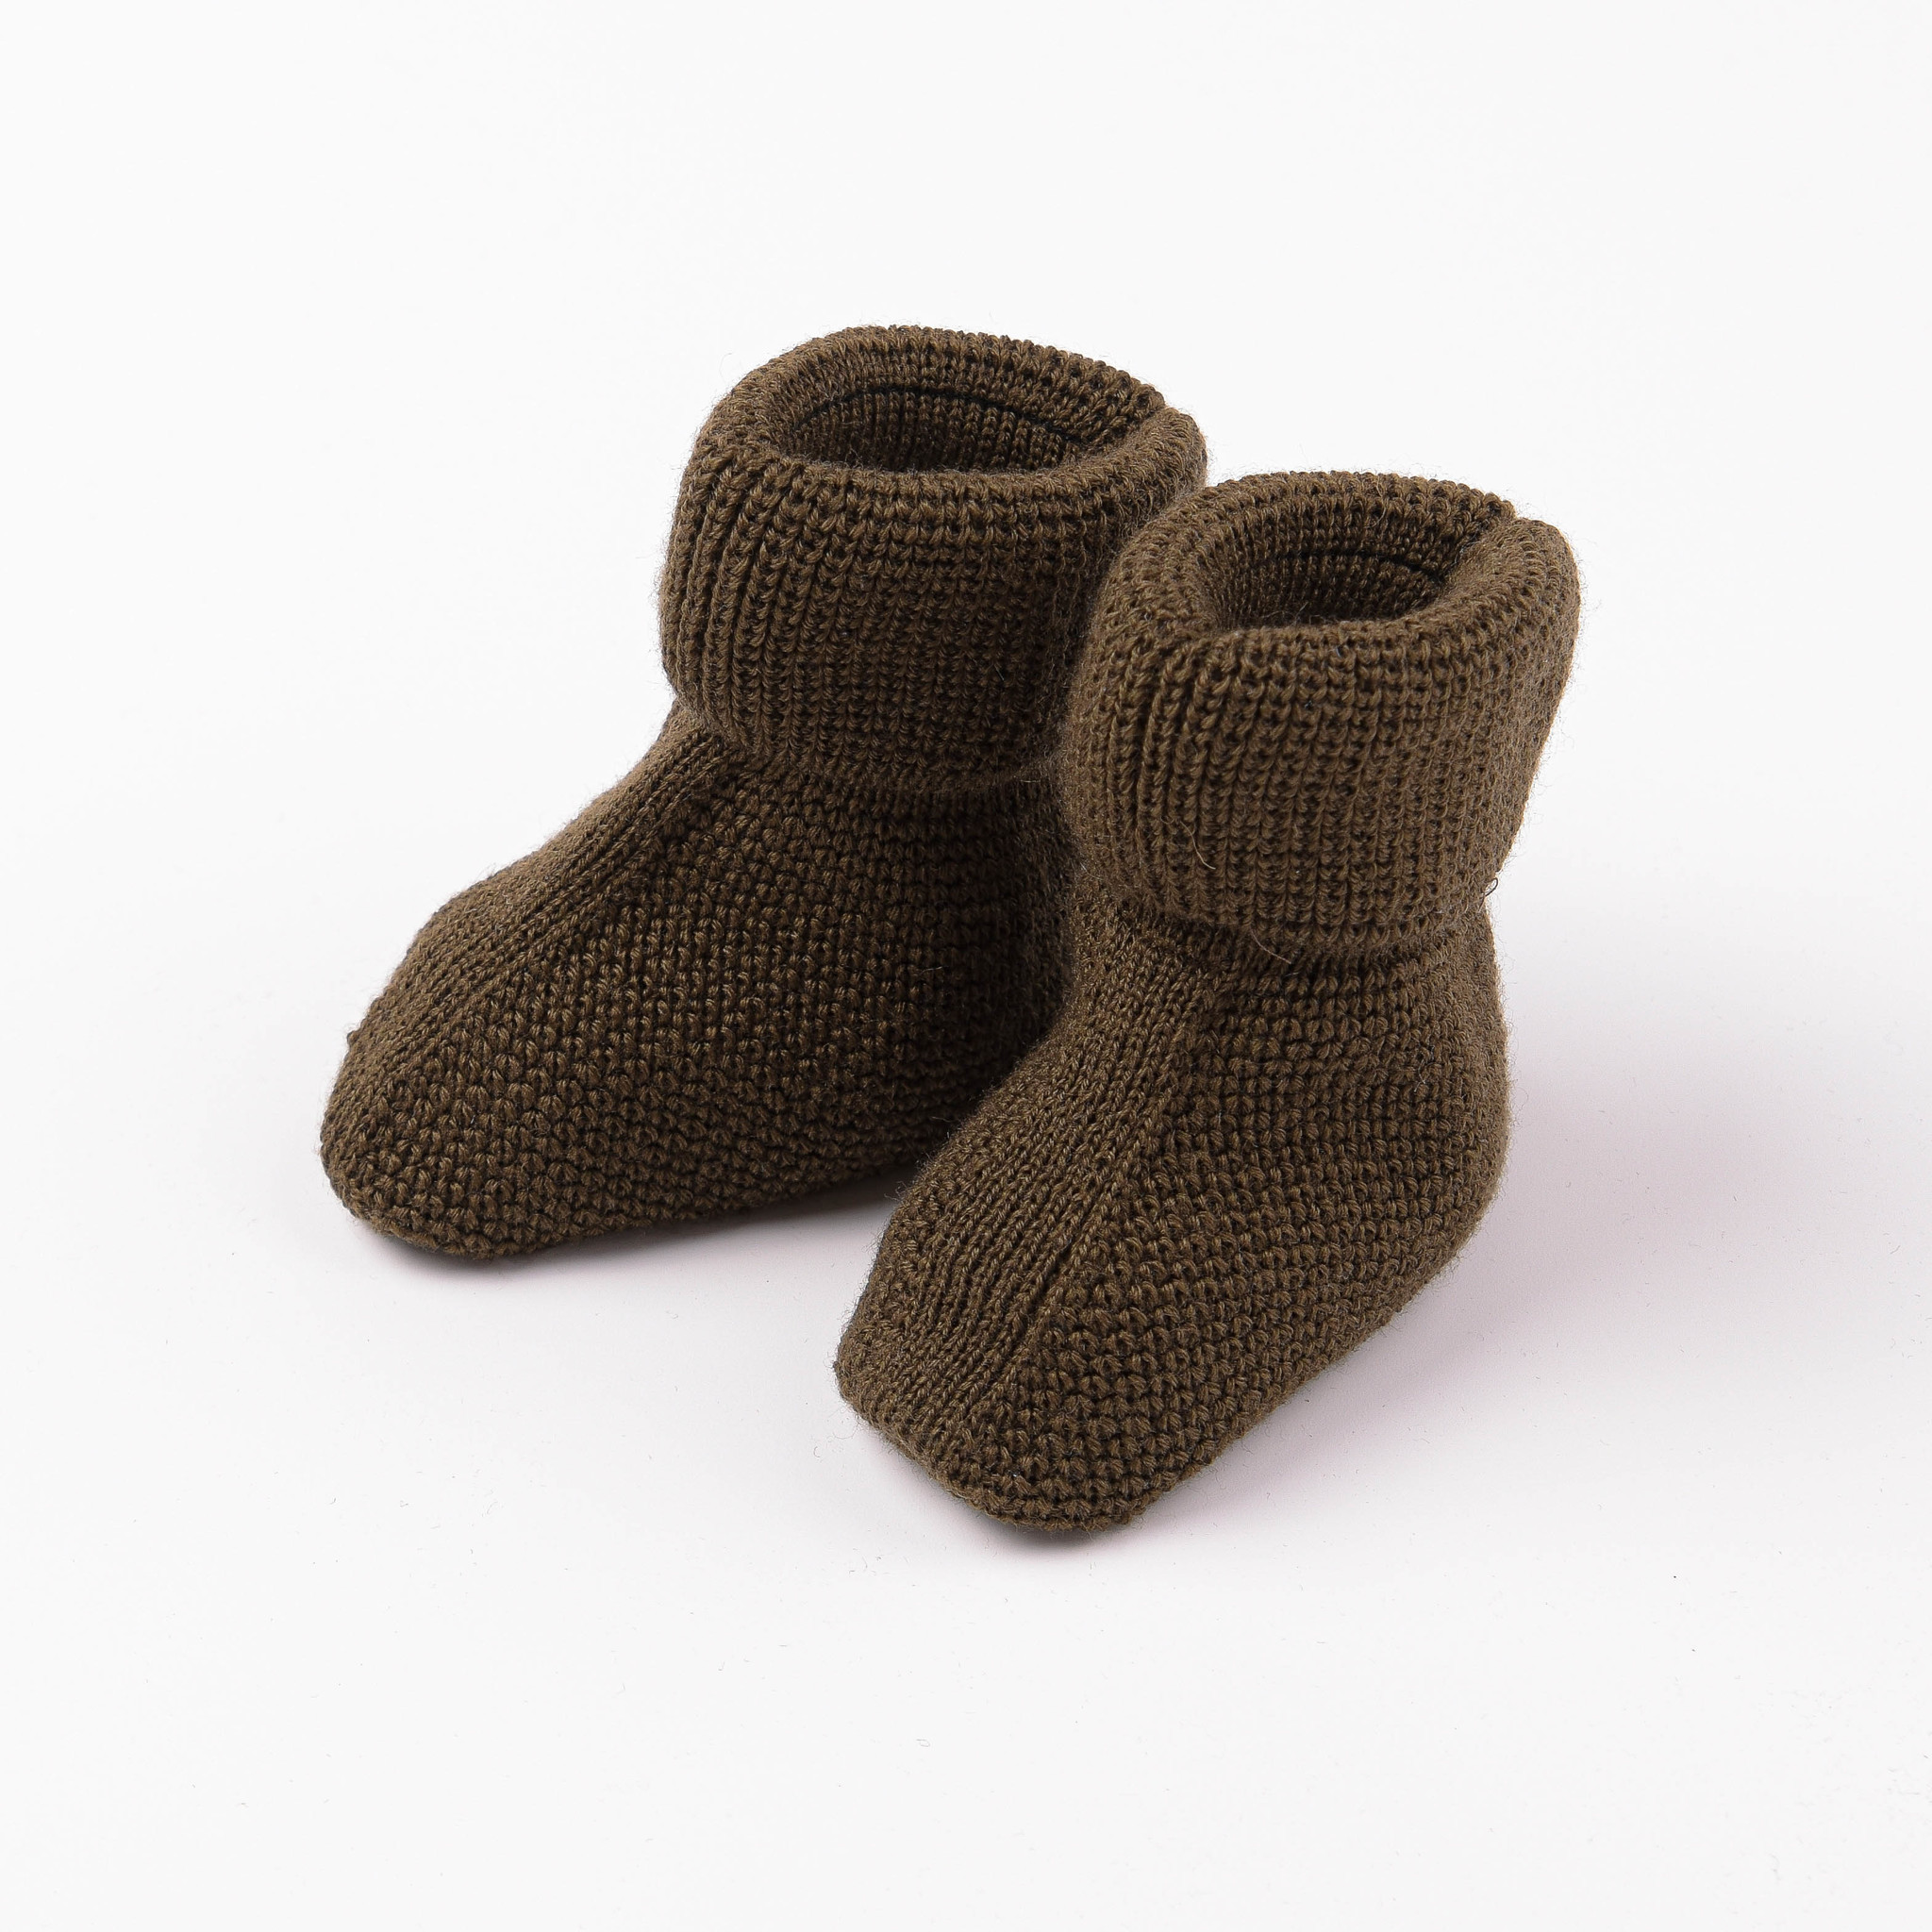 Knitted baby booties 0+, Chocolate Biscuit